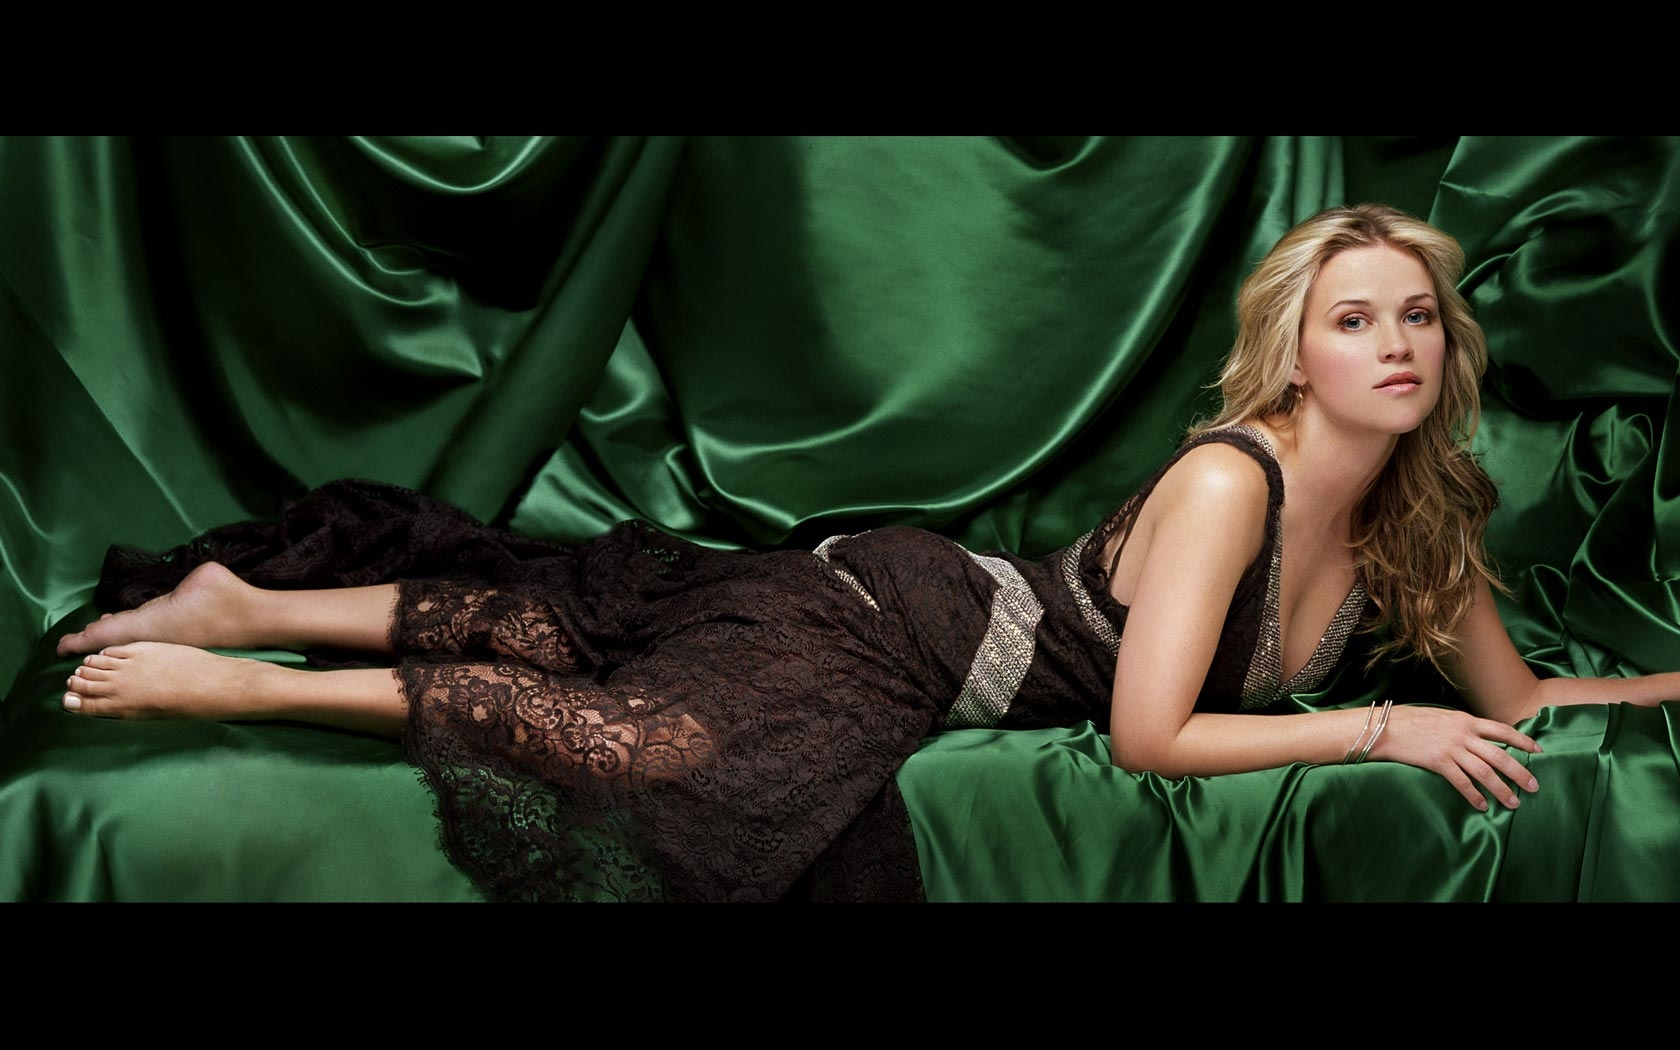 Reese Witherspoon sexe vidéo